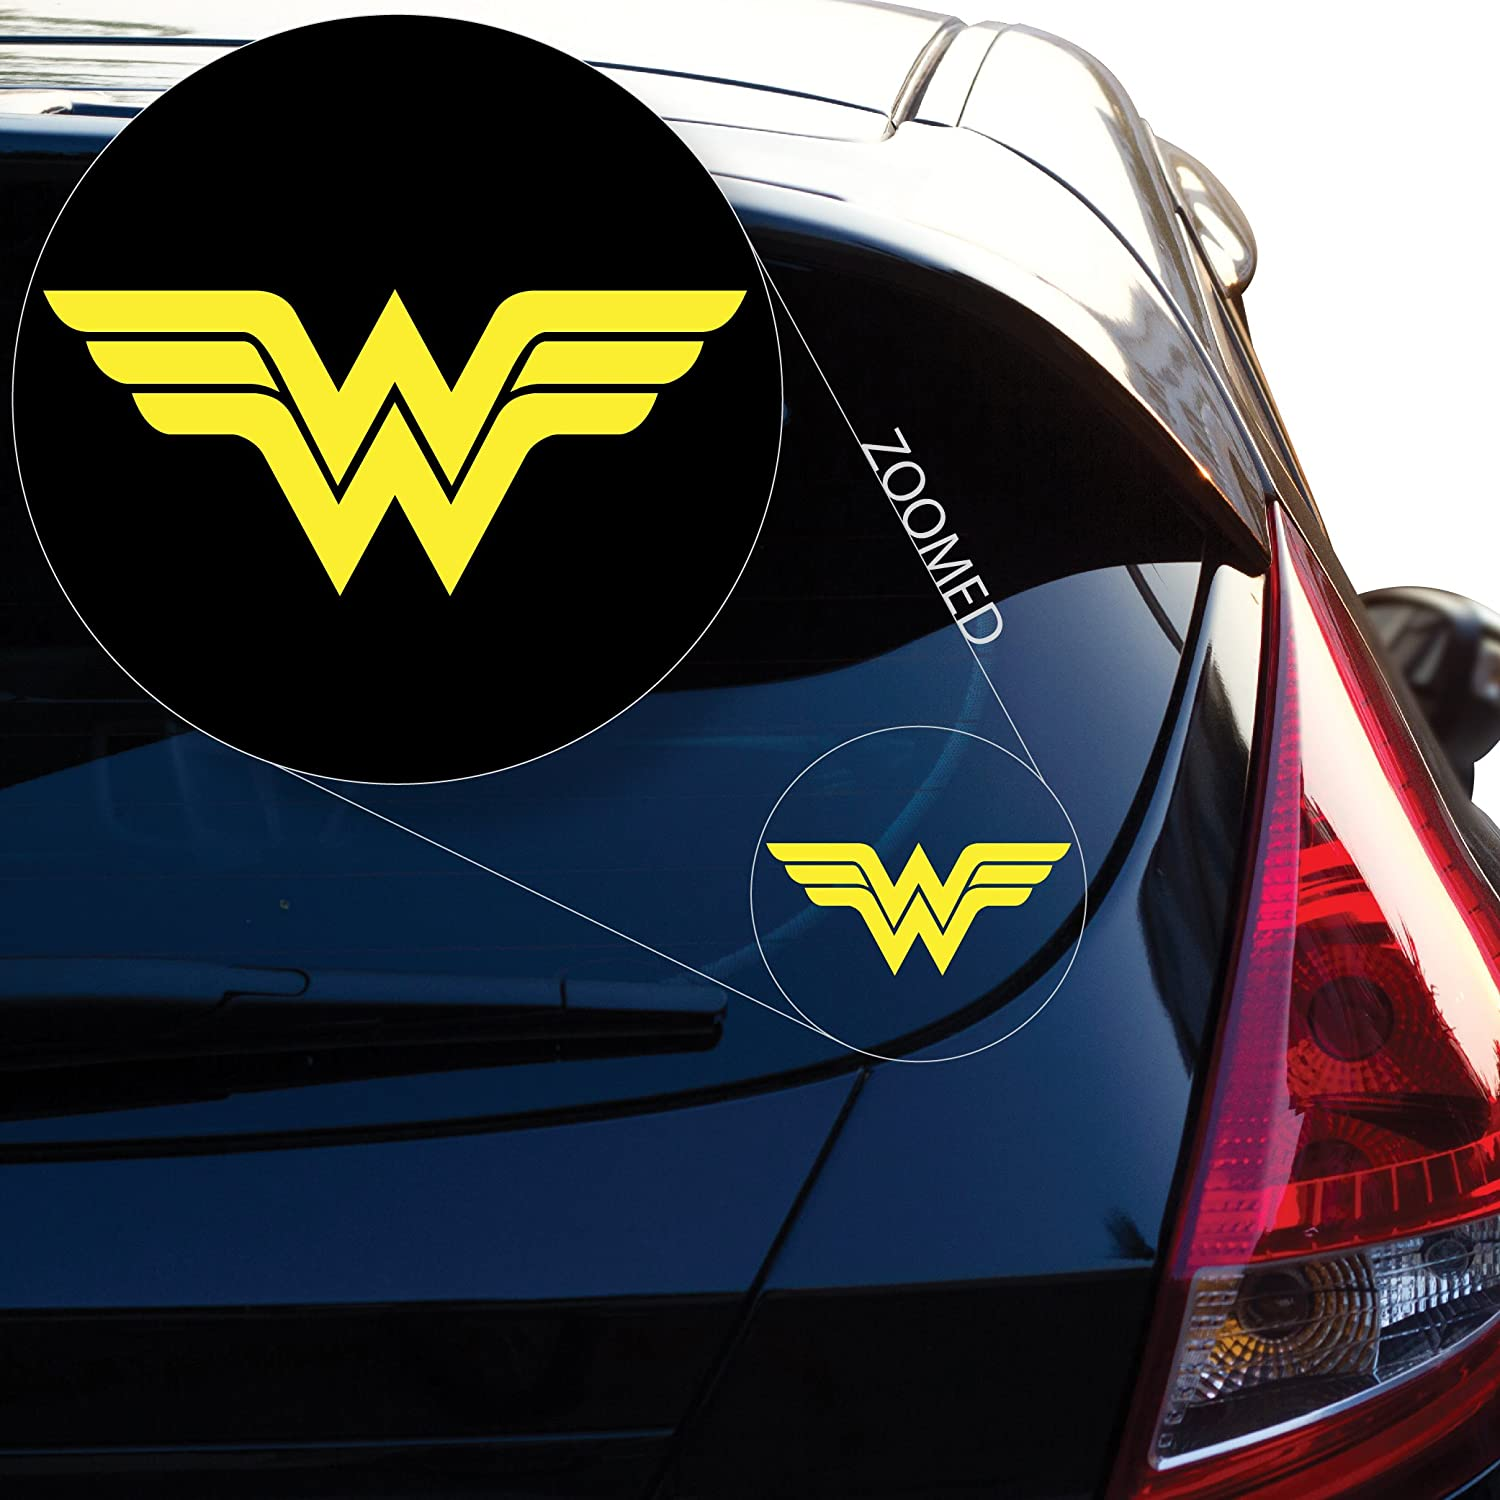 Wonder Woman Decal Sticker for Car Window, Laptop, Motorcycle, Walls, Mirror and More. # 550 (4' x 9.2', White) Mirror and More. # 550 (4 x 9.2 Yoonek Graphics